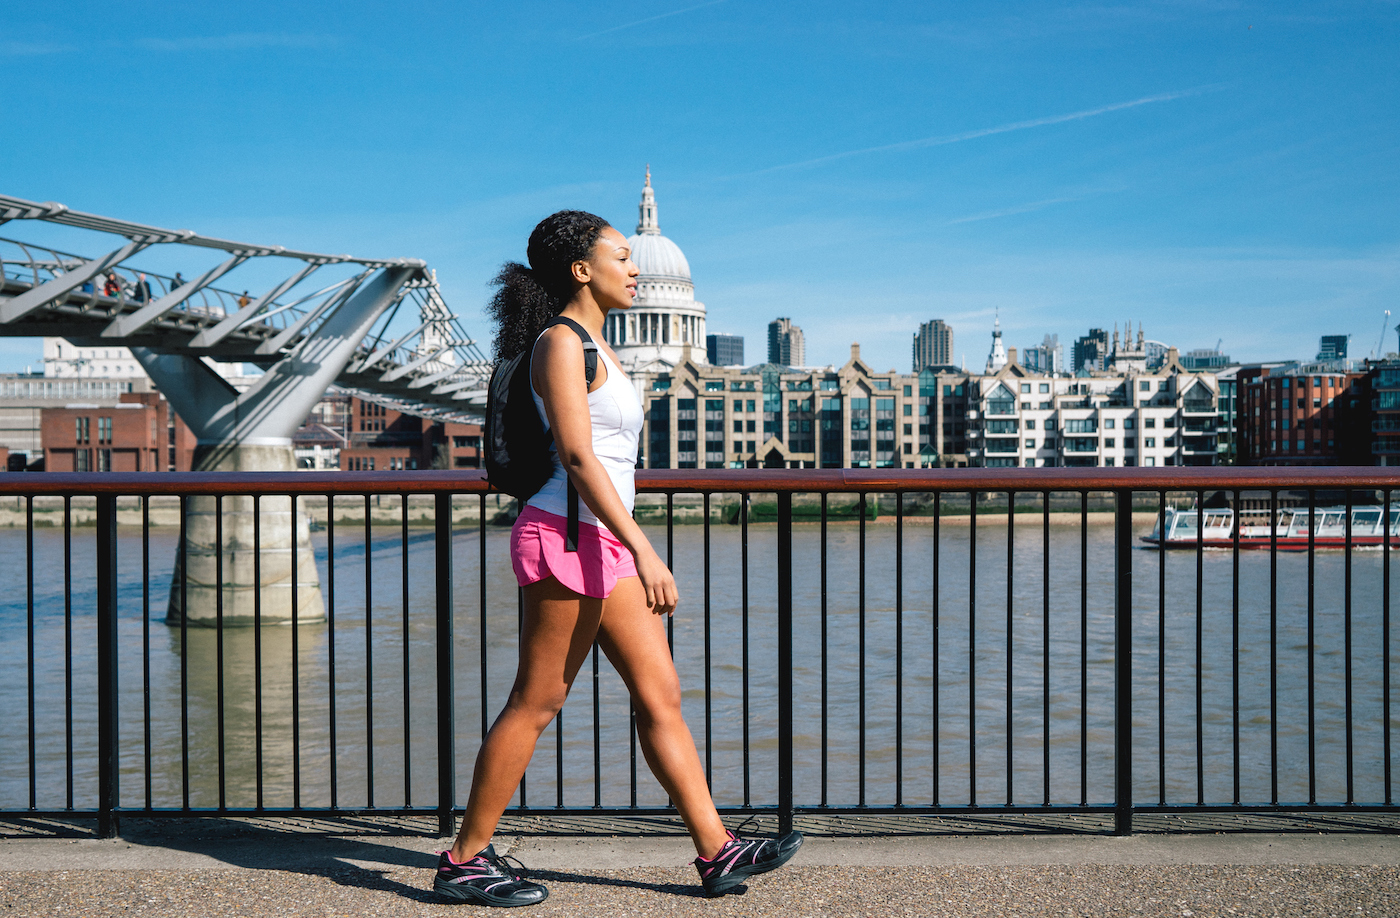 Thumbnail for 6 Tips for Getting More Out of Your Walking Workouts, According to Harvard Health